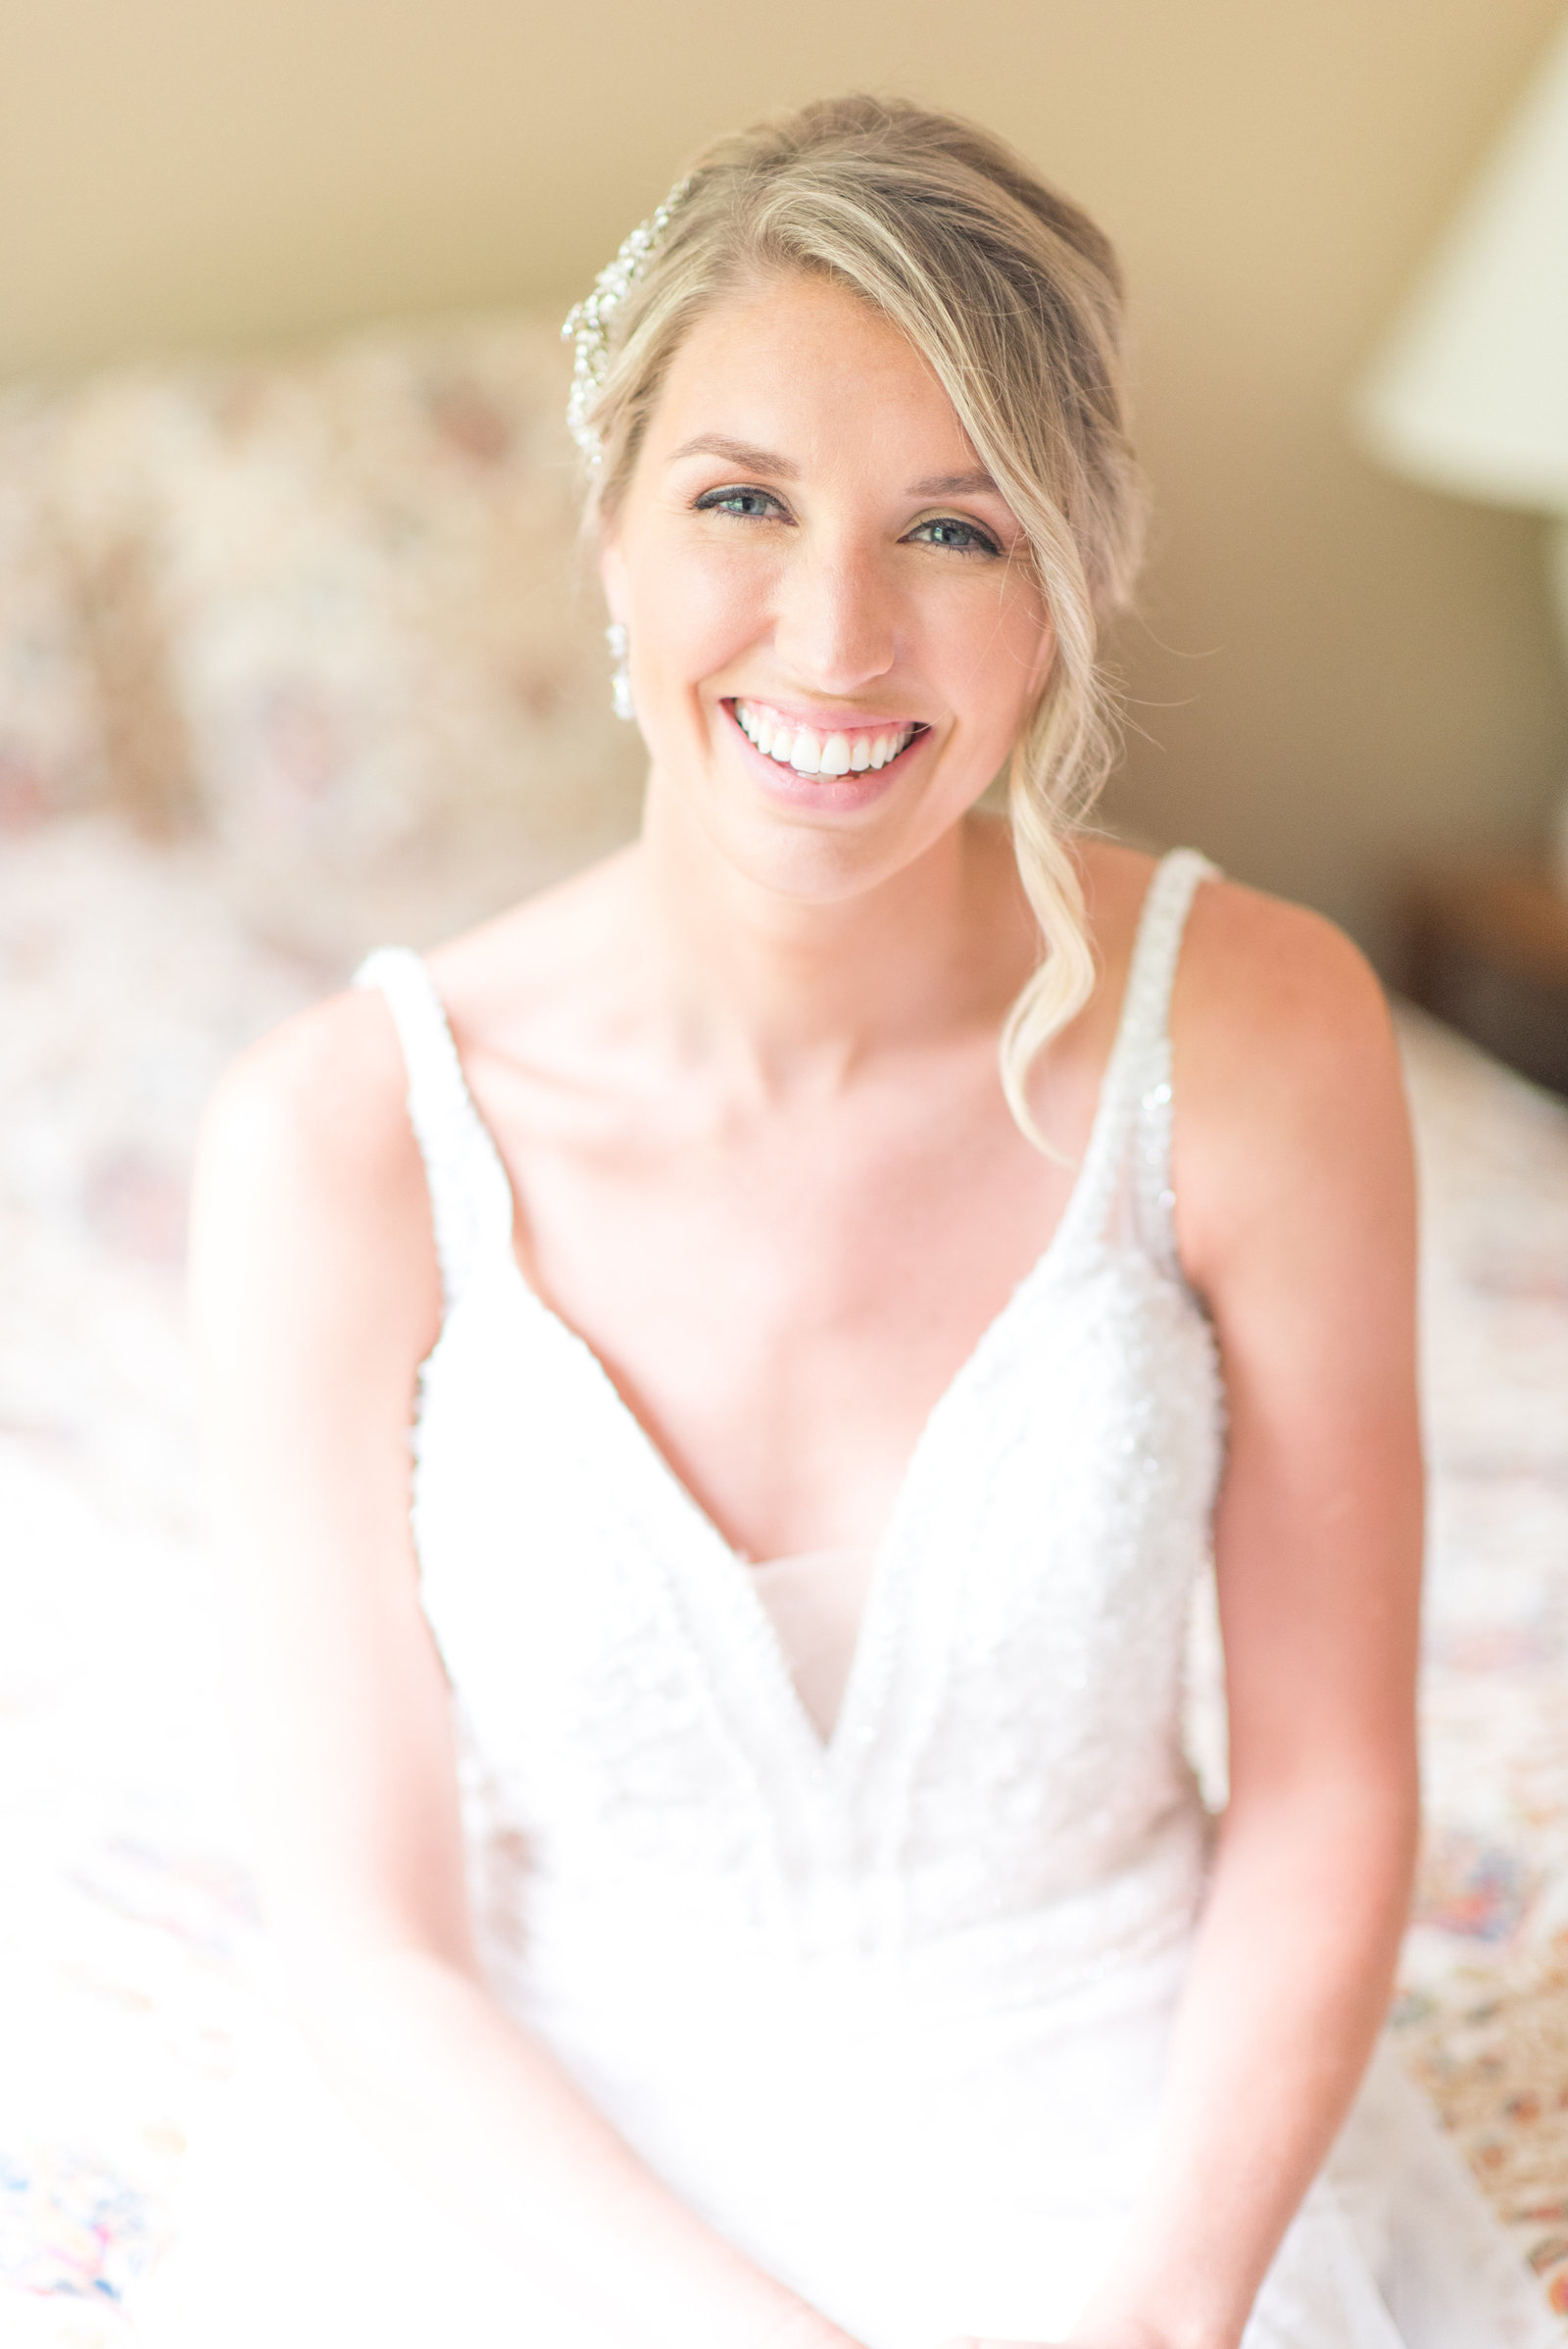 carmen-may-photography-pittsburgh-wedding-113